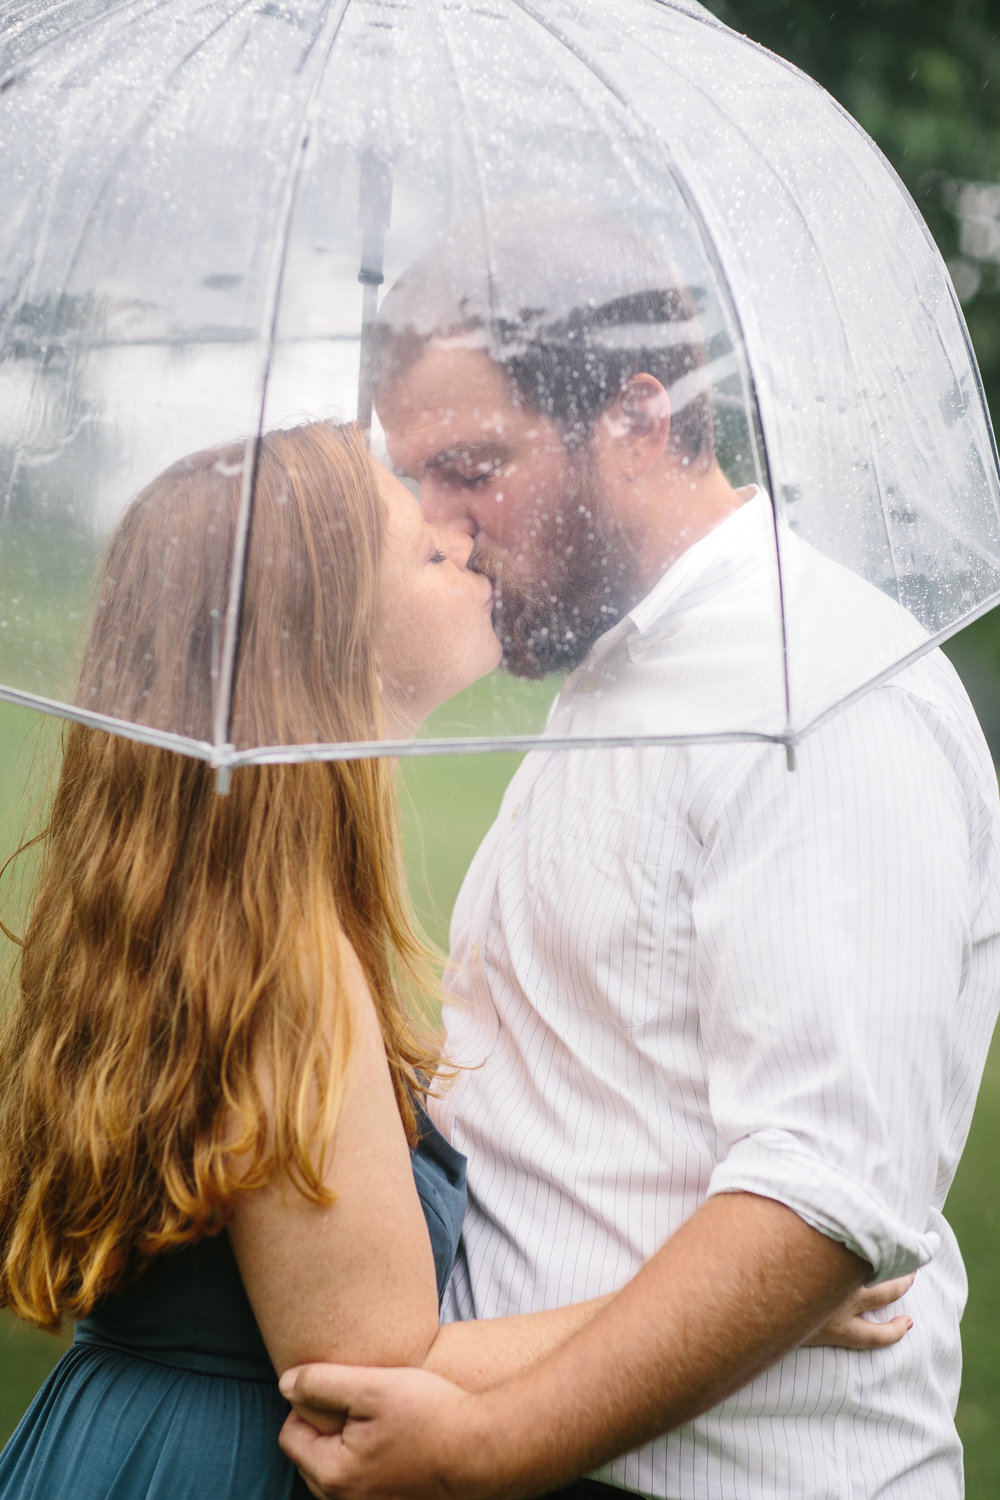 kiss under umbrella.kissing in the rain.rainy engagement photos.engagement photo inspiration.clear umbrella.JPG